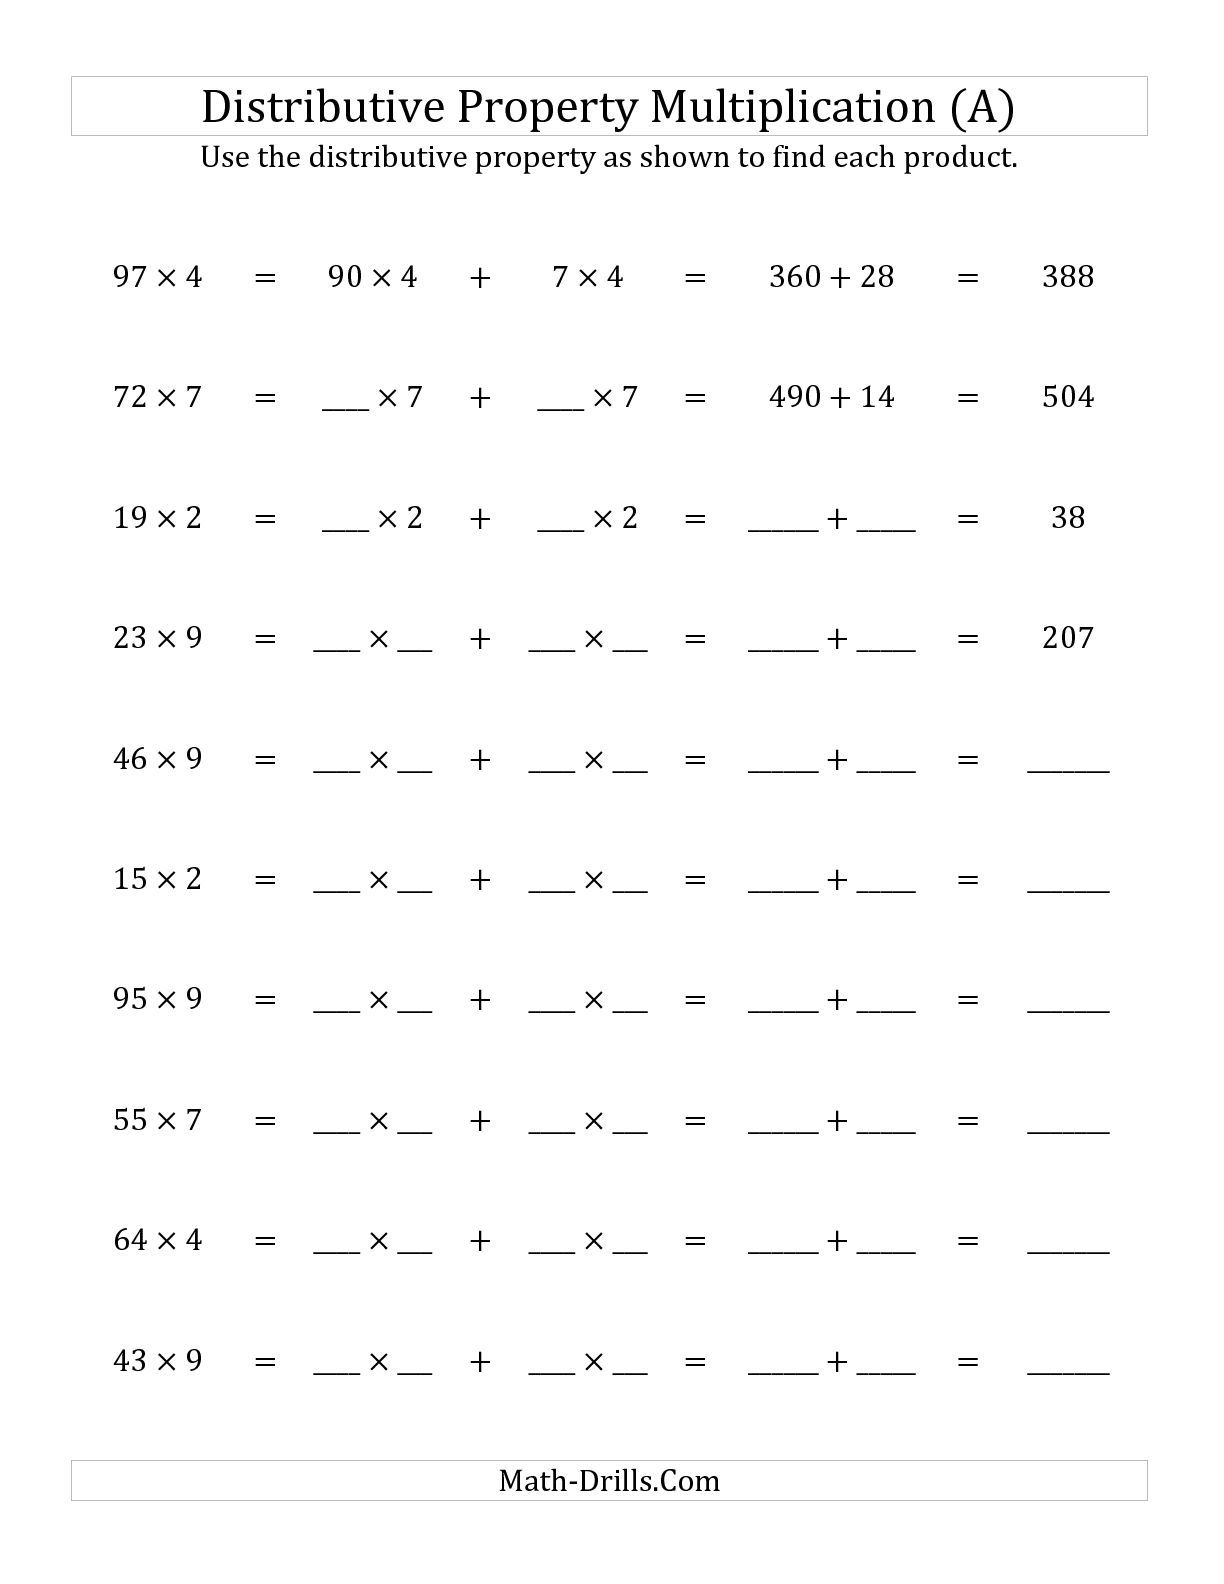 Distributive Property Of Multiplication Worksheets